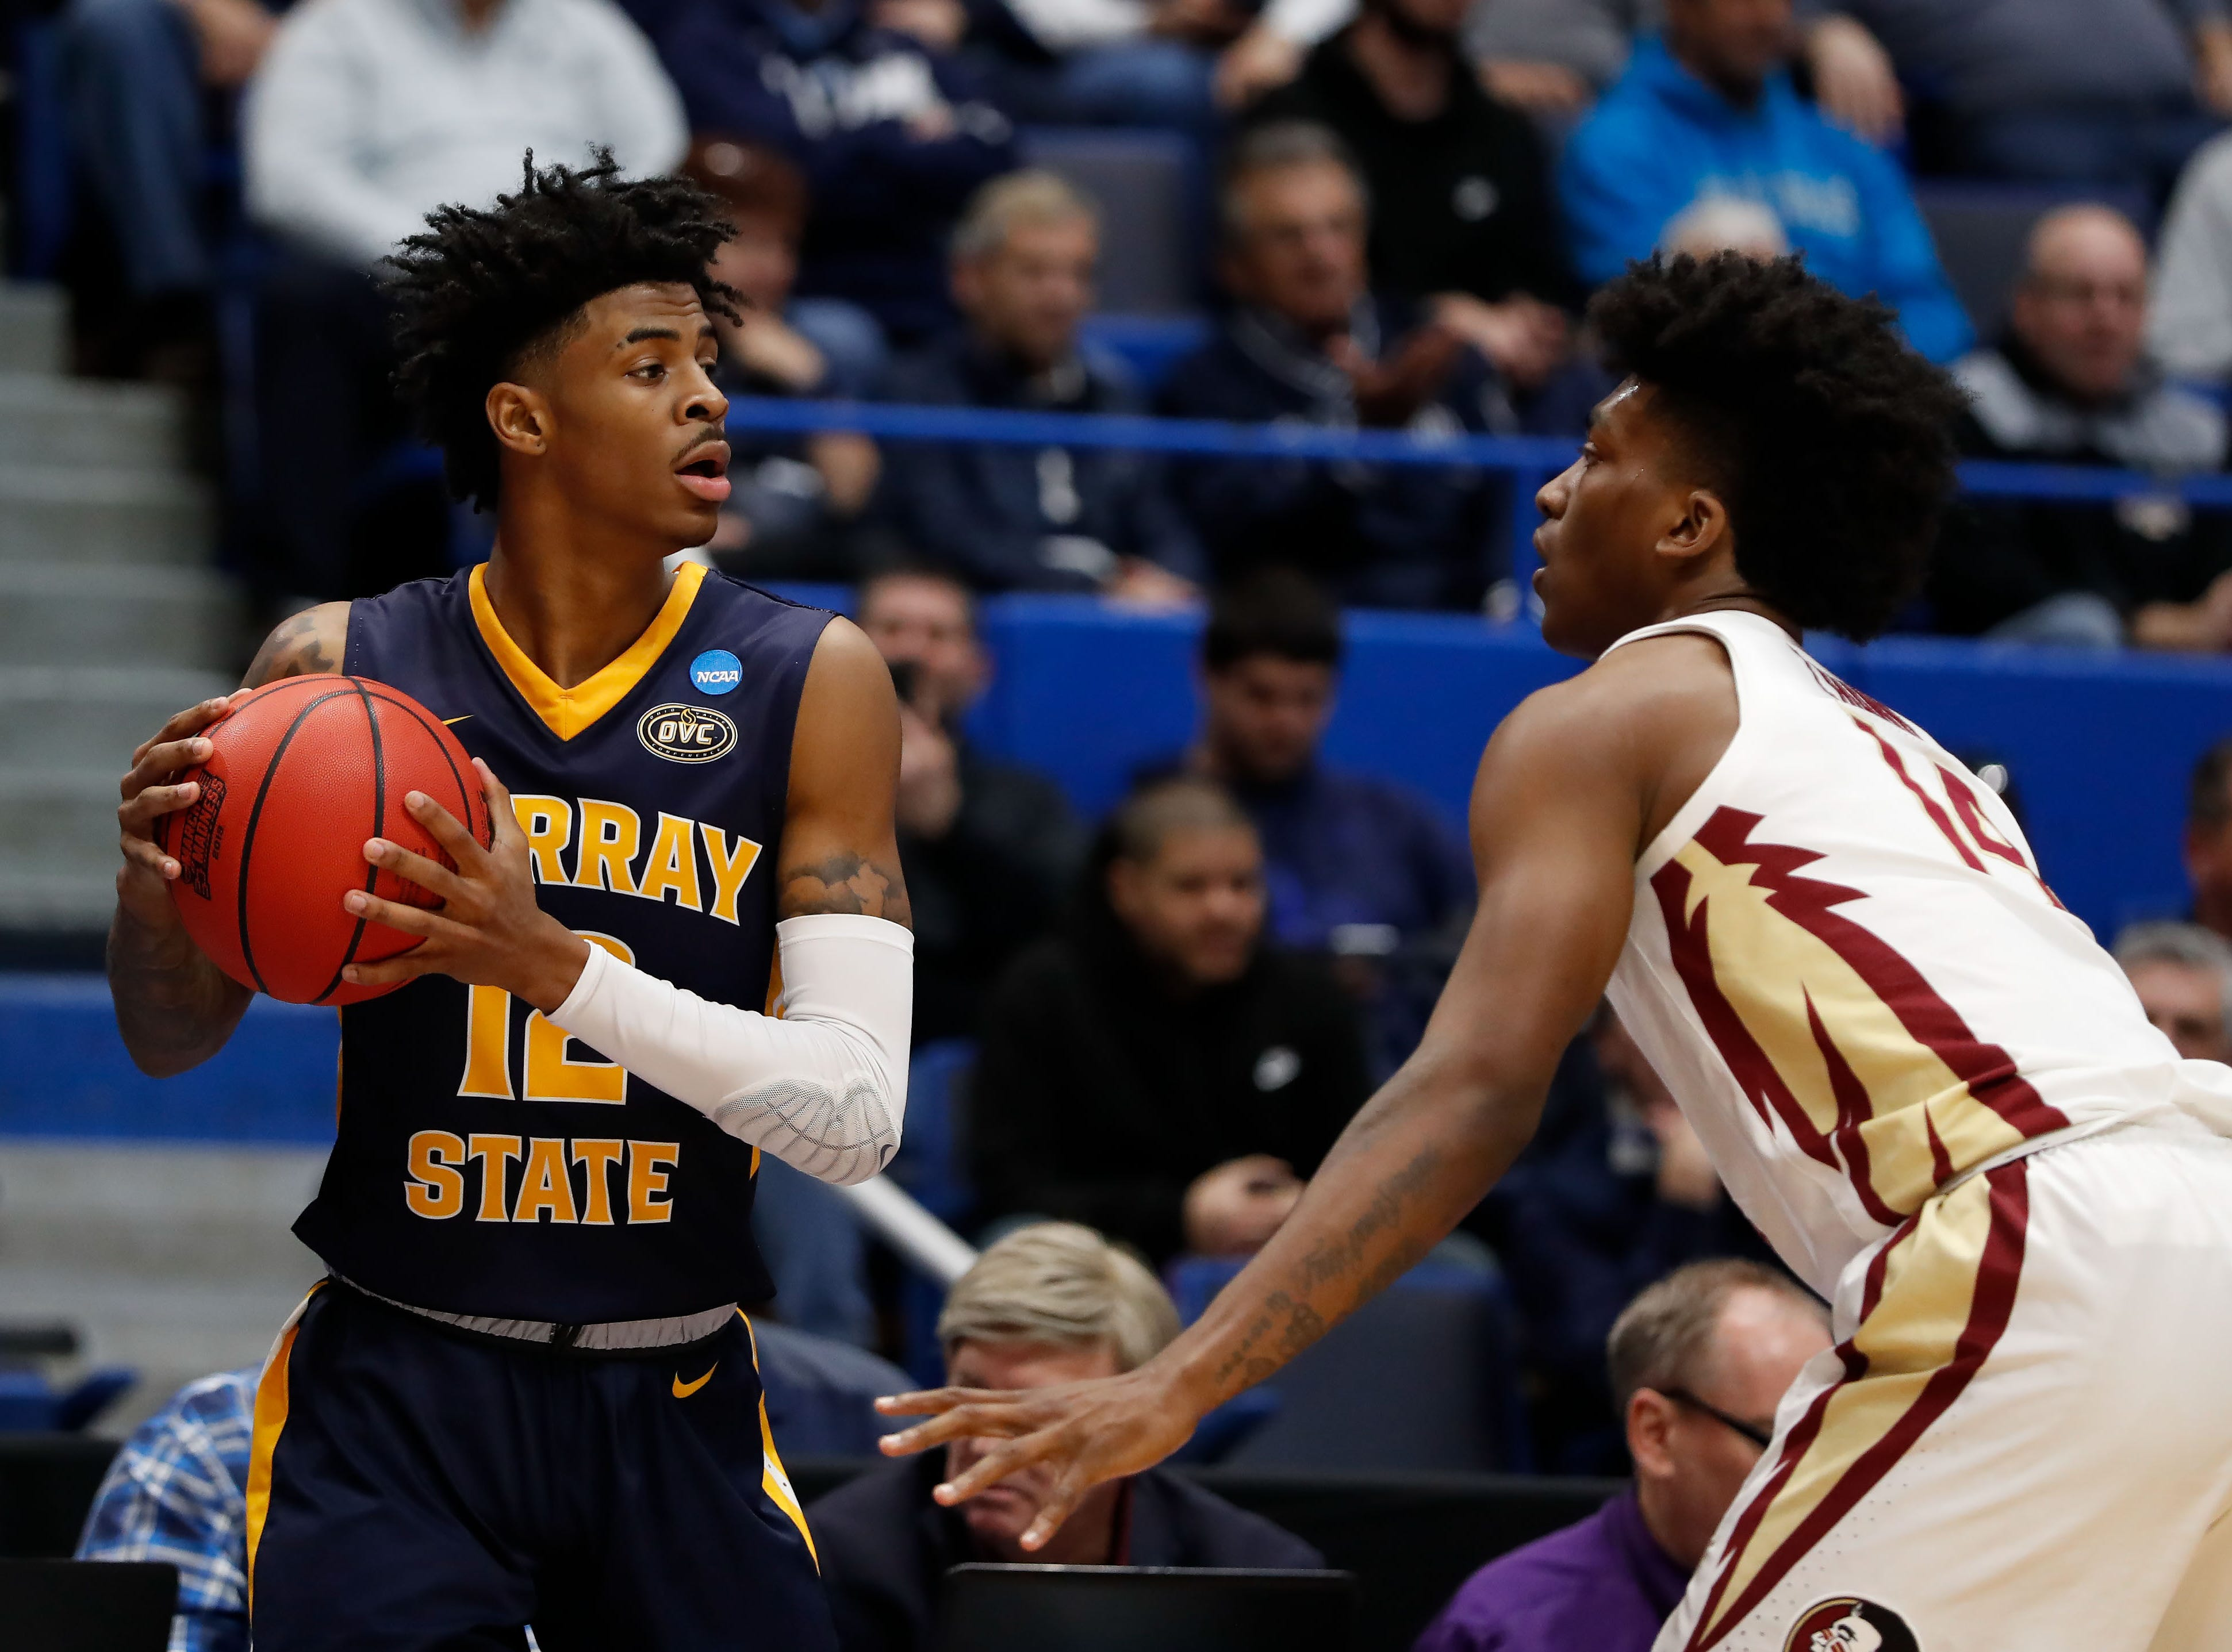 Mar 23, 2019; Hartford, CT, USA; Murray State Racers guard Ja Morant (12) looks to pass around Florida State Seminoles guard Terance Mann (14) during the first half of a game in the second round of the 2019 NCAA Tournament at XL Center. Mandatory Credit: David Butler II-USA TODAY Sports